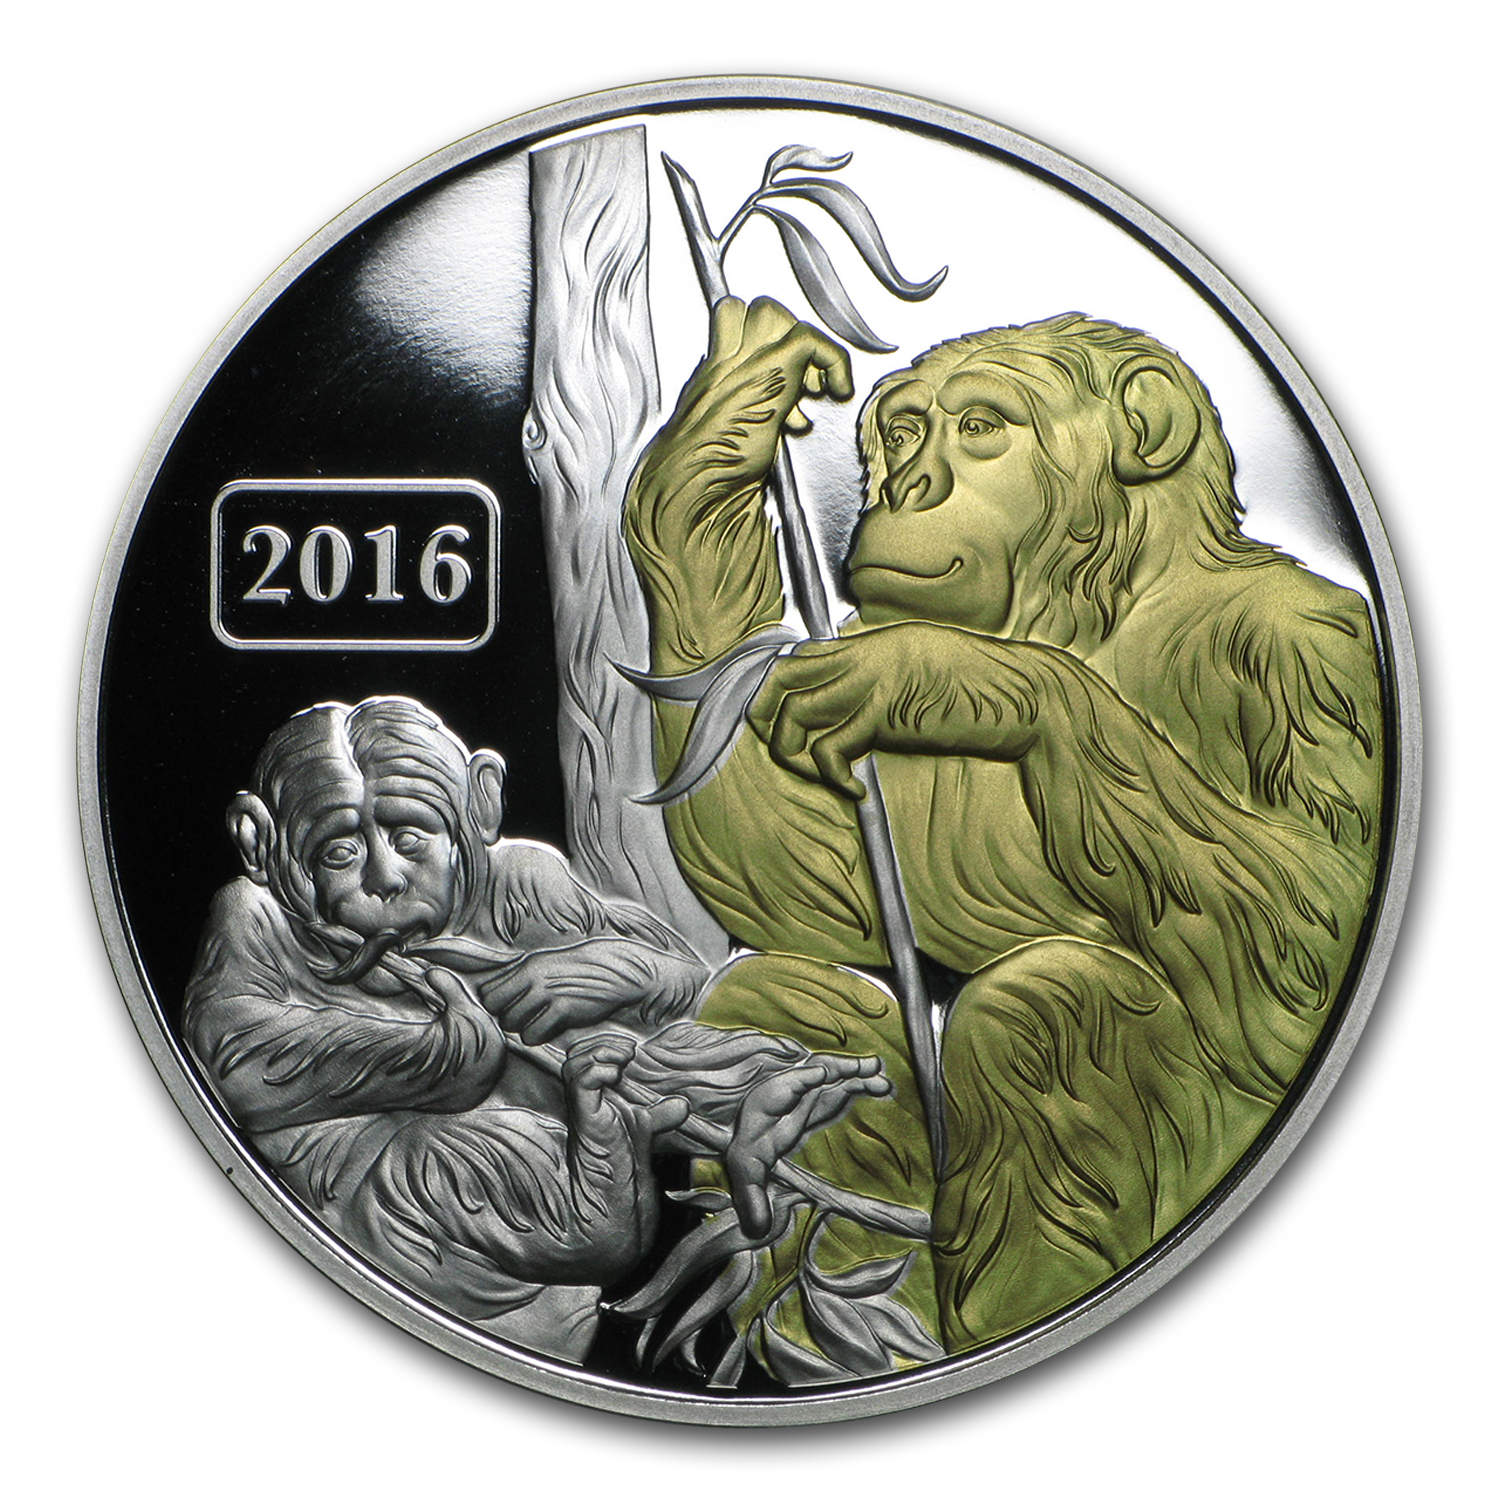 2016 Tokelau 1 oz Proof Silver Year of the Monkey (Gilded)